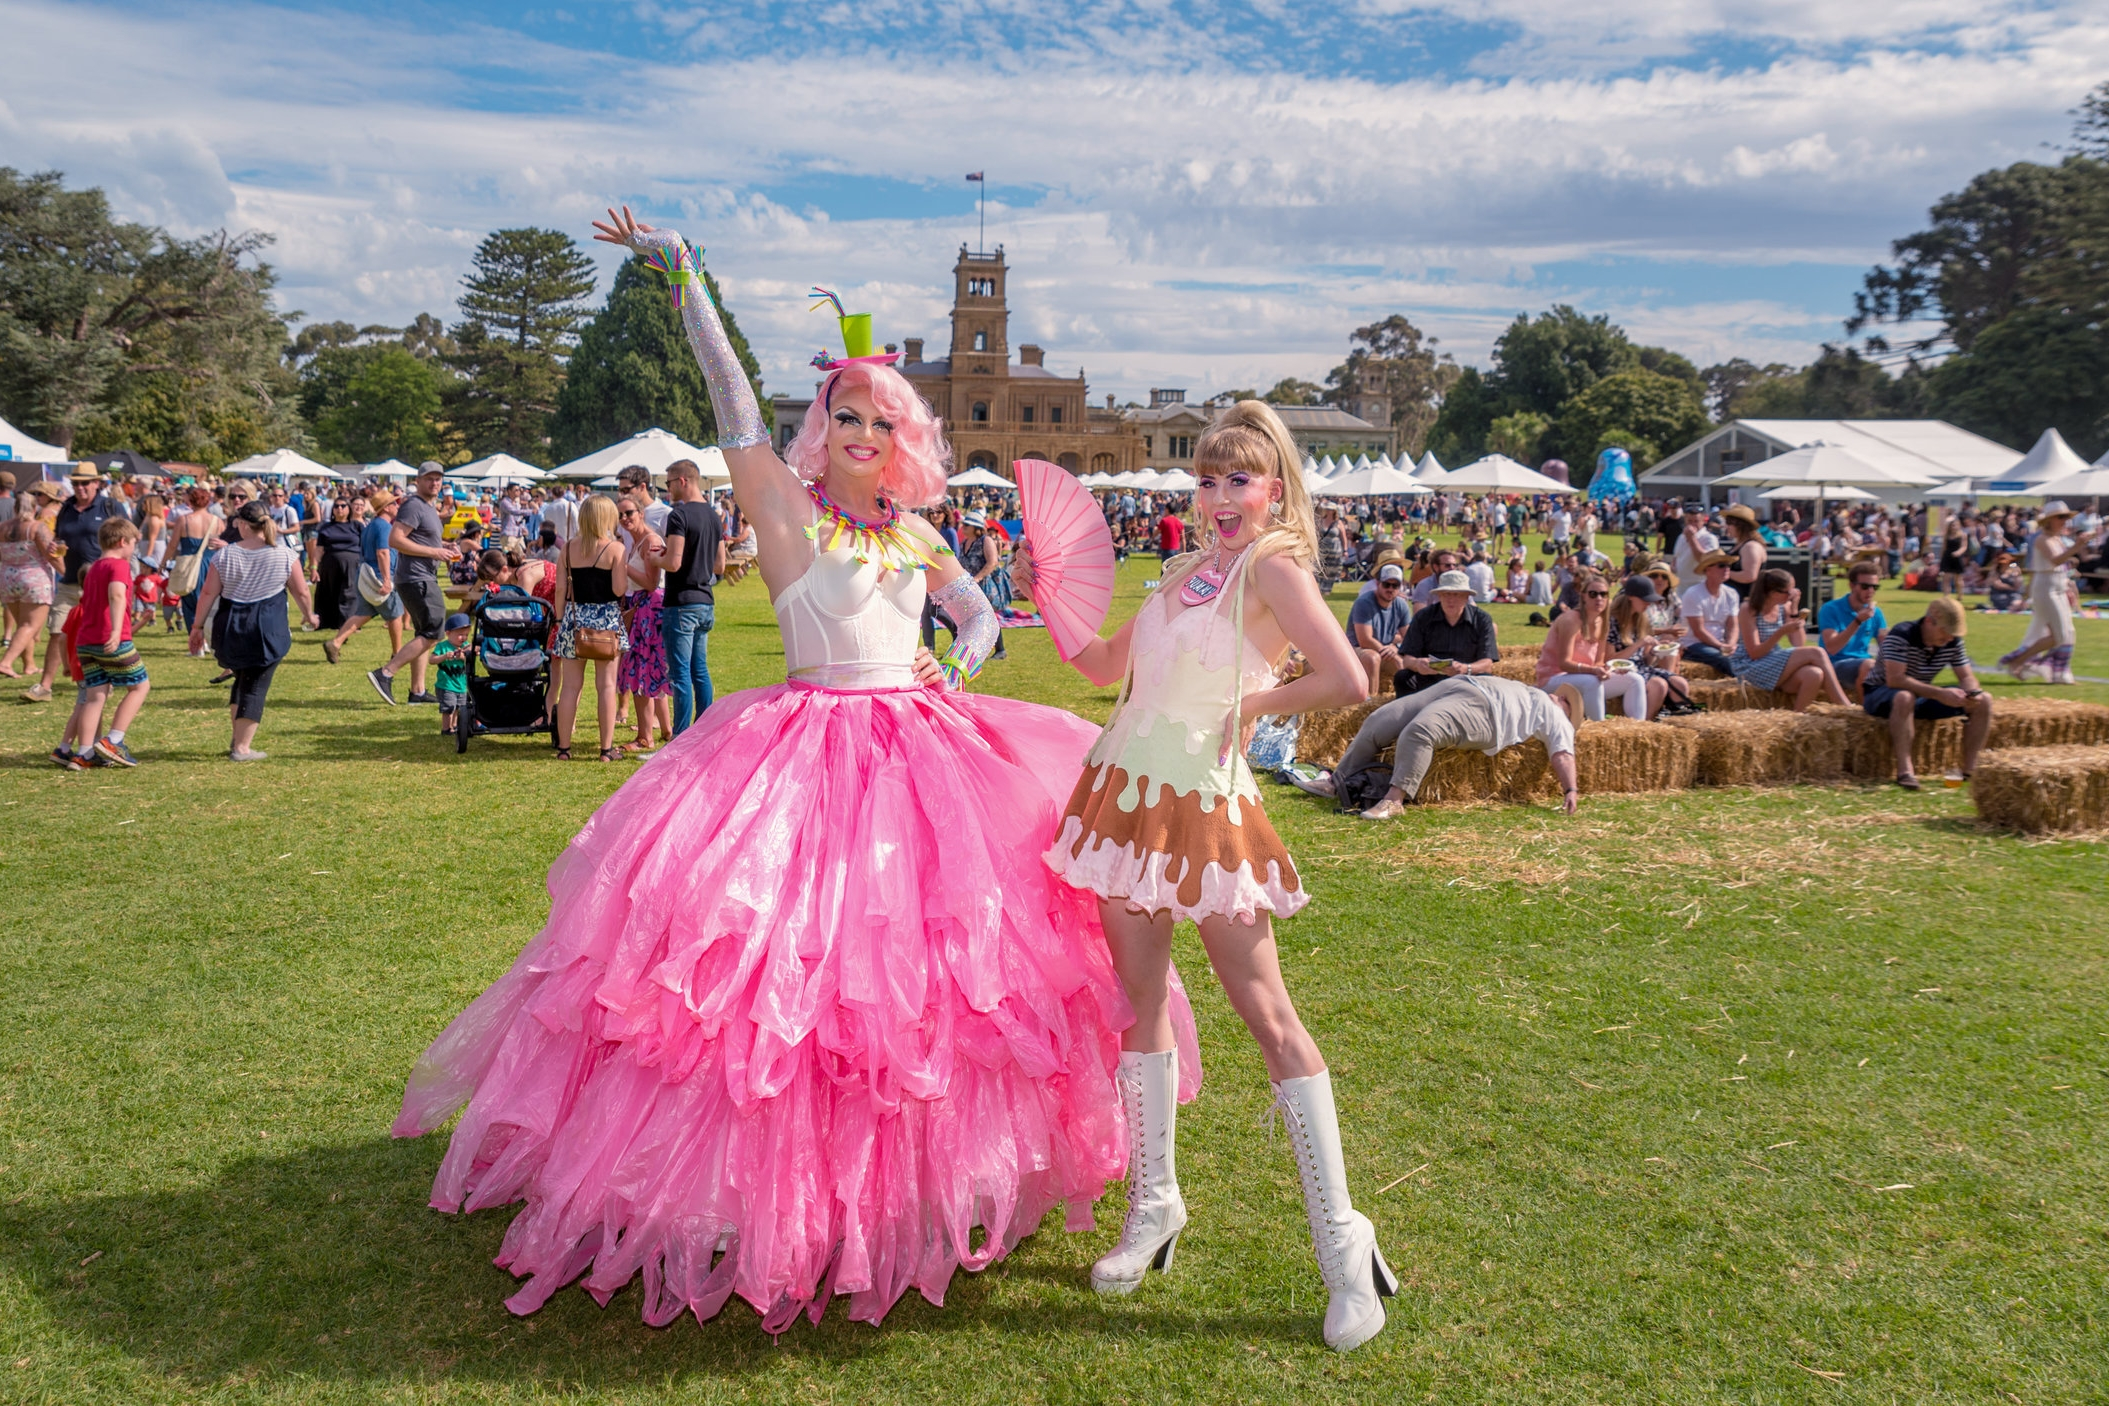 Photograph of Valerie Hex and Hannie Helsden for Wyndham City Fromage a Trois Festival.